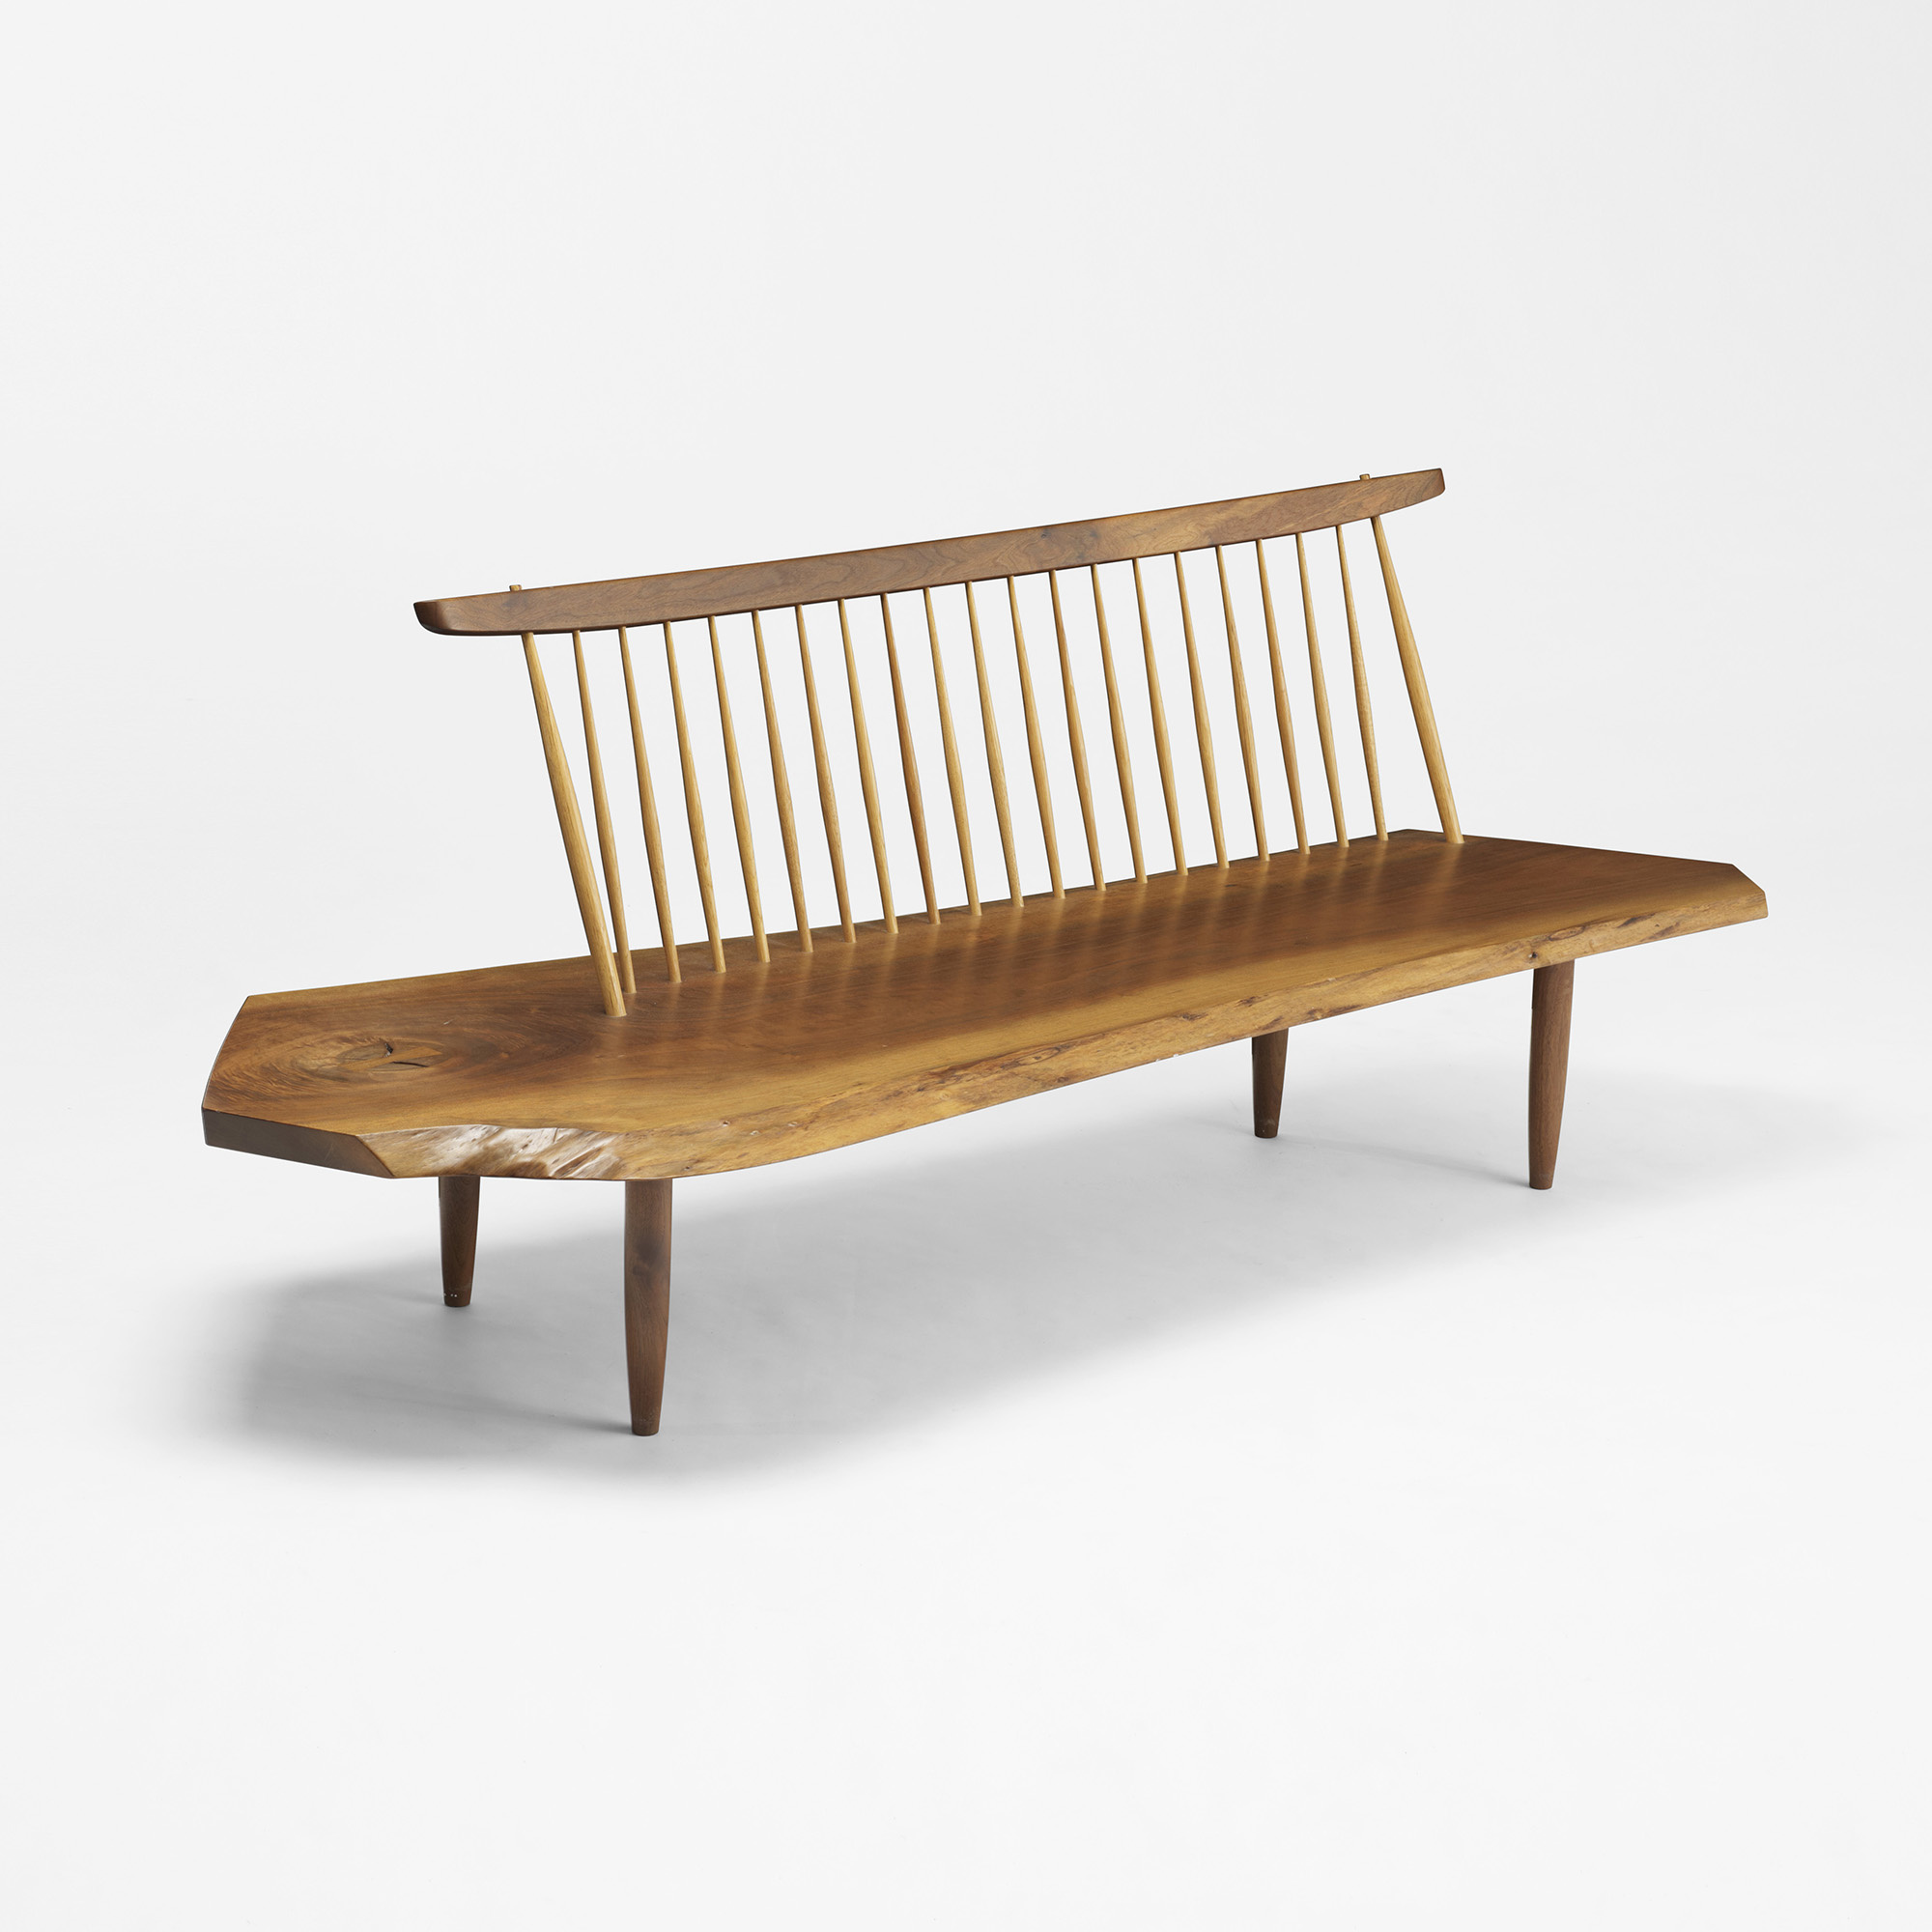 Modern Home Design October 2012: 156: GEORGE NAKASHIMA, Conoid Bench